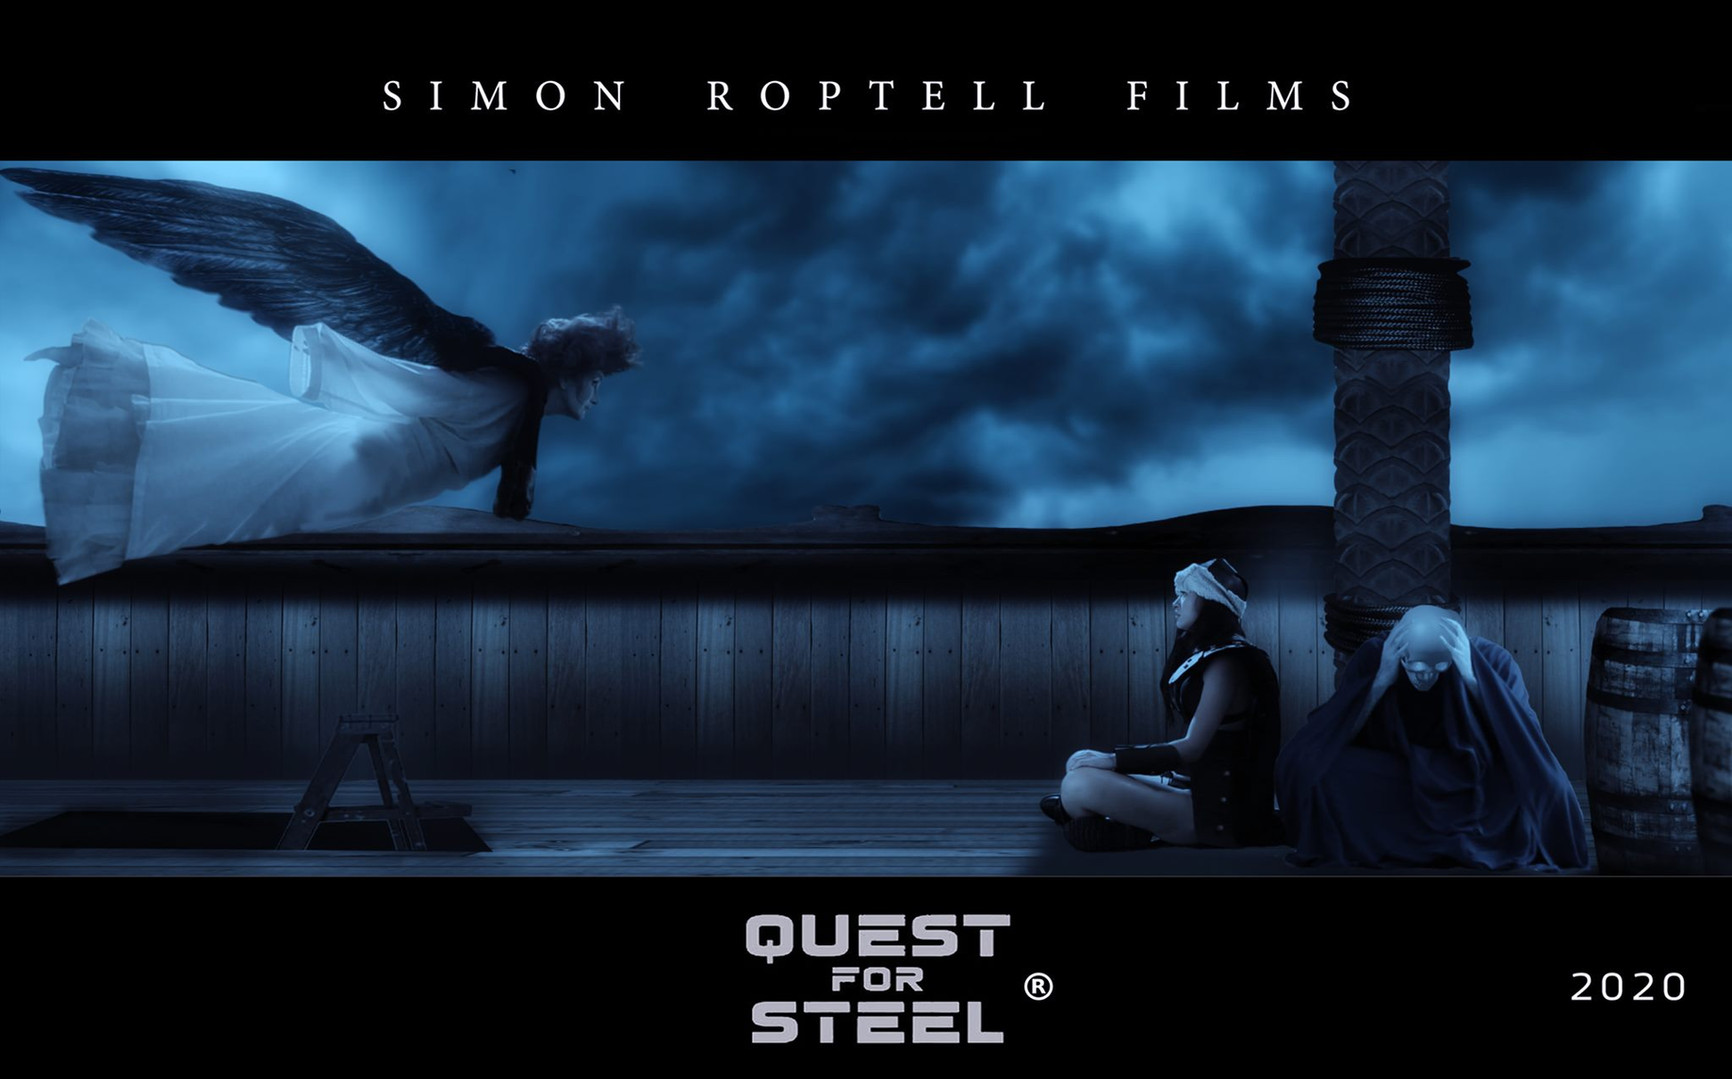 Quest for steel. simon roptell